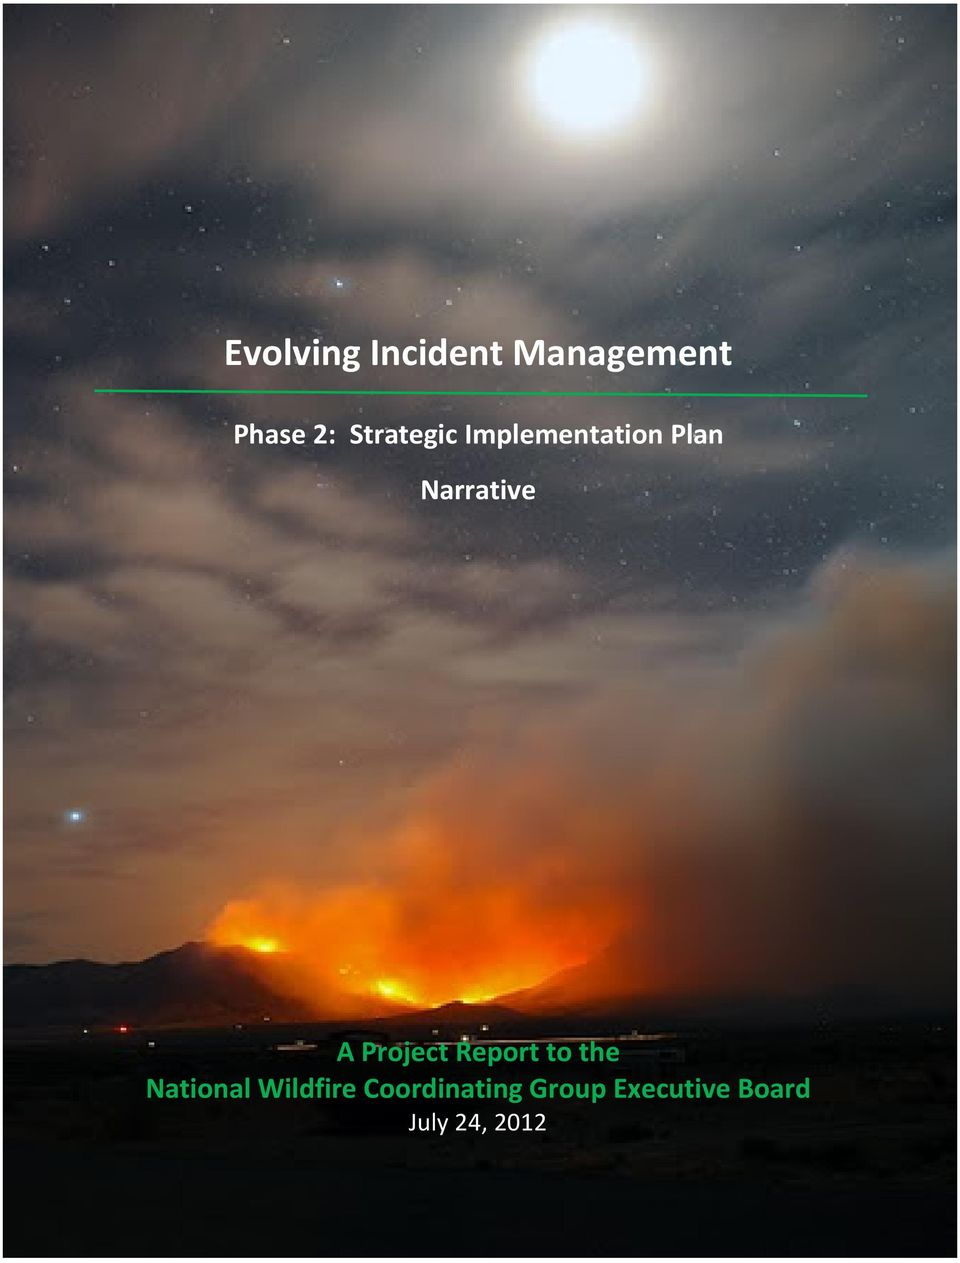 Project Report to the National Wildfire